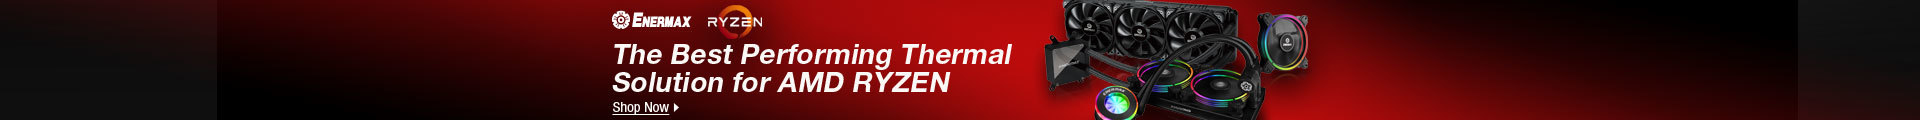 The Best Performing Thermal Solution for AMD RYZEN